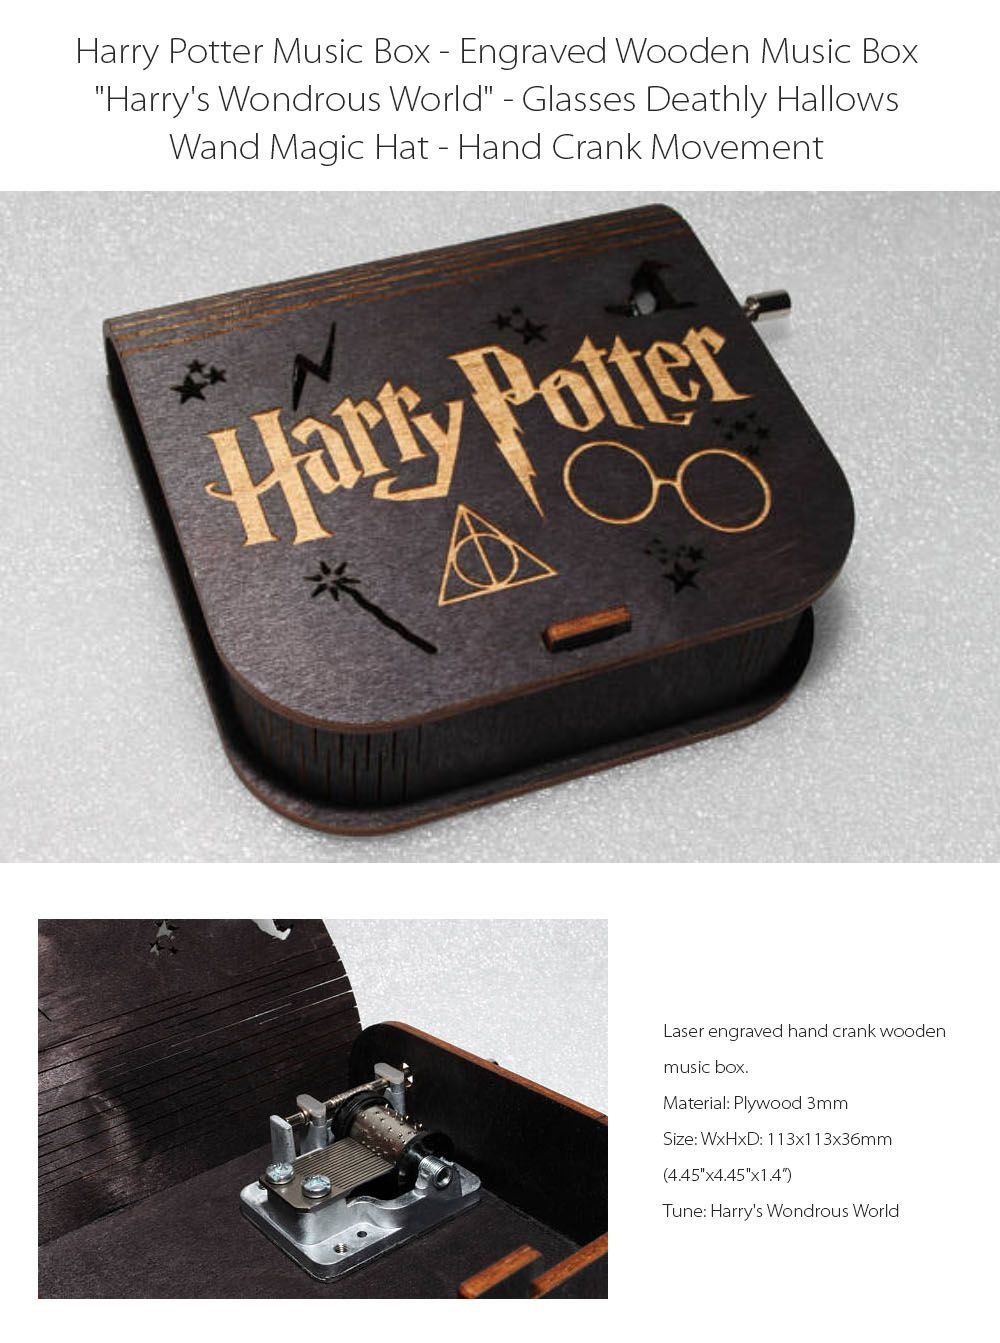 Harry Potter Music Box Plays Harry's Wondrous World